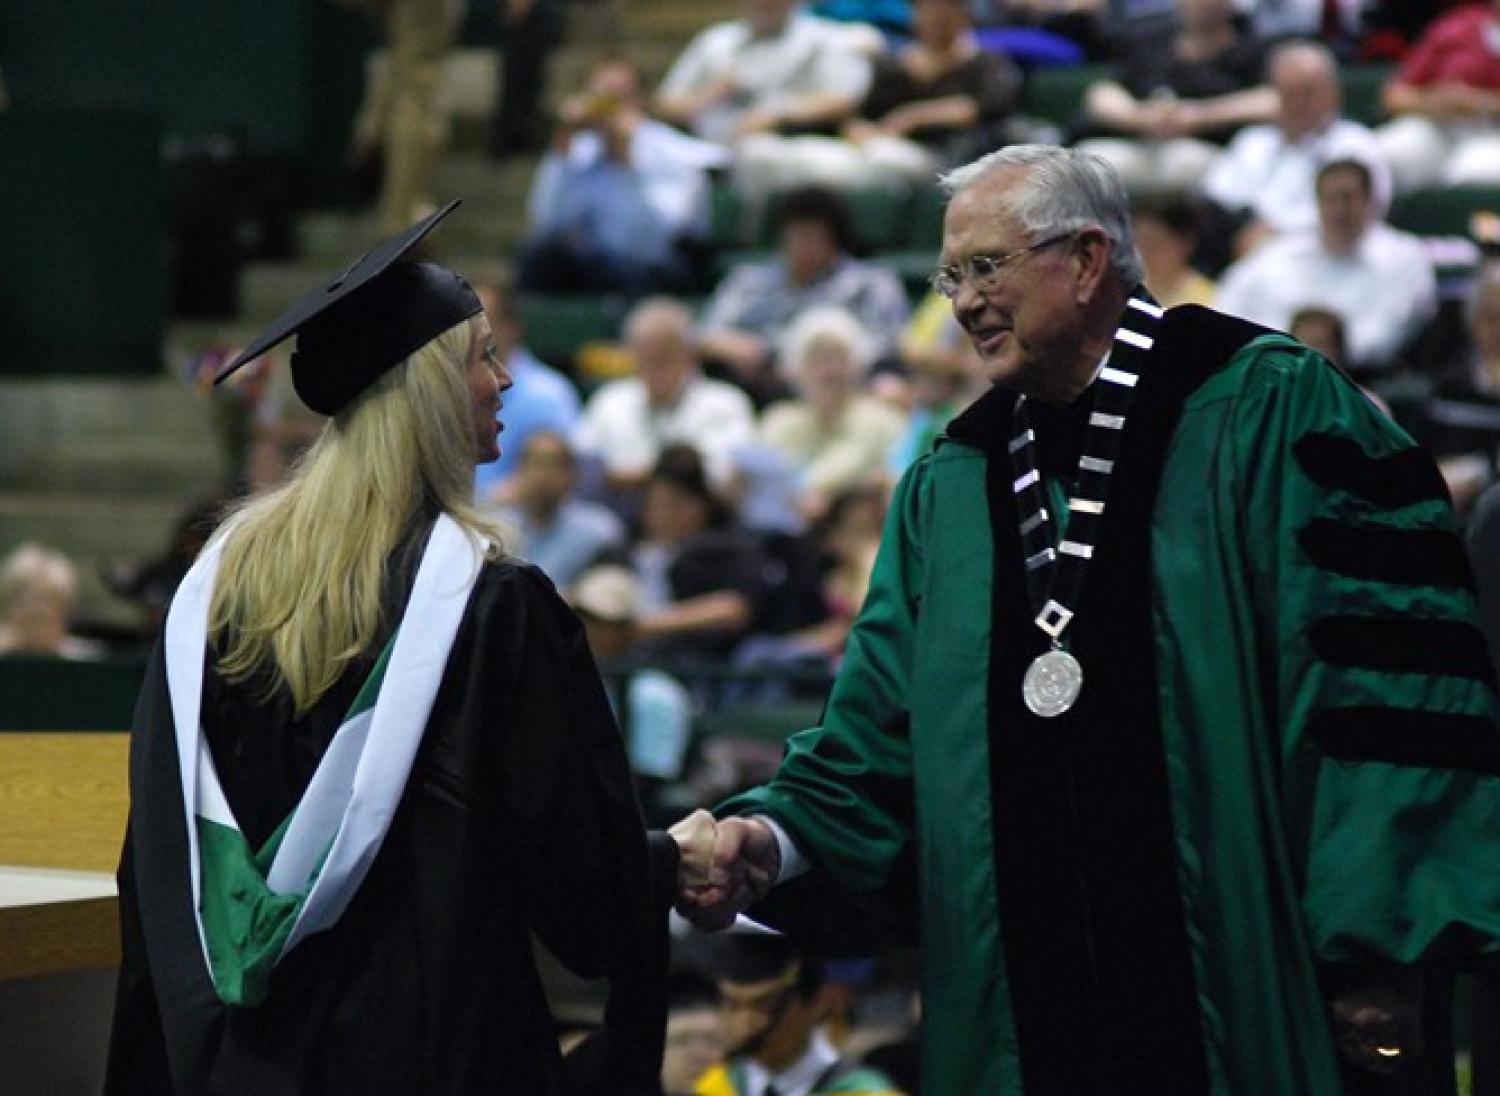 Masters Commencement Ceremony] - The Portal to Texas History